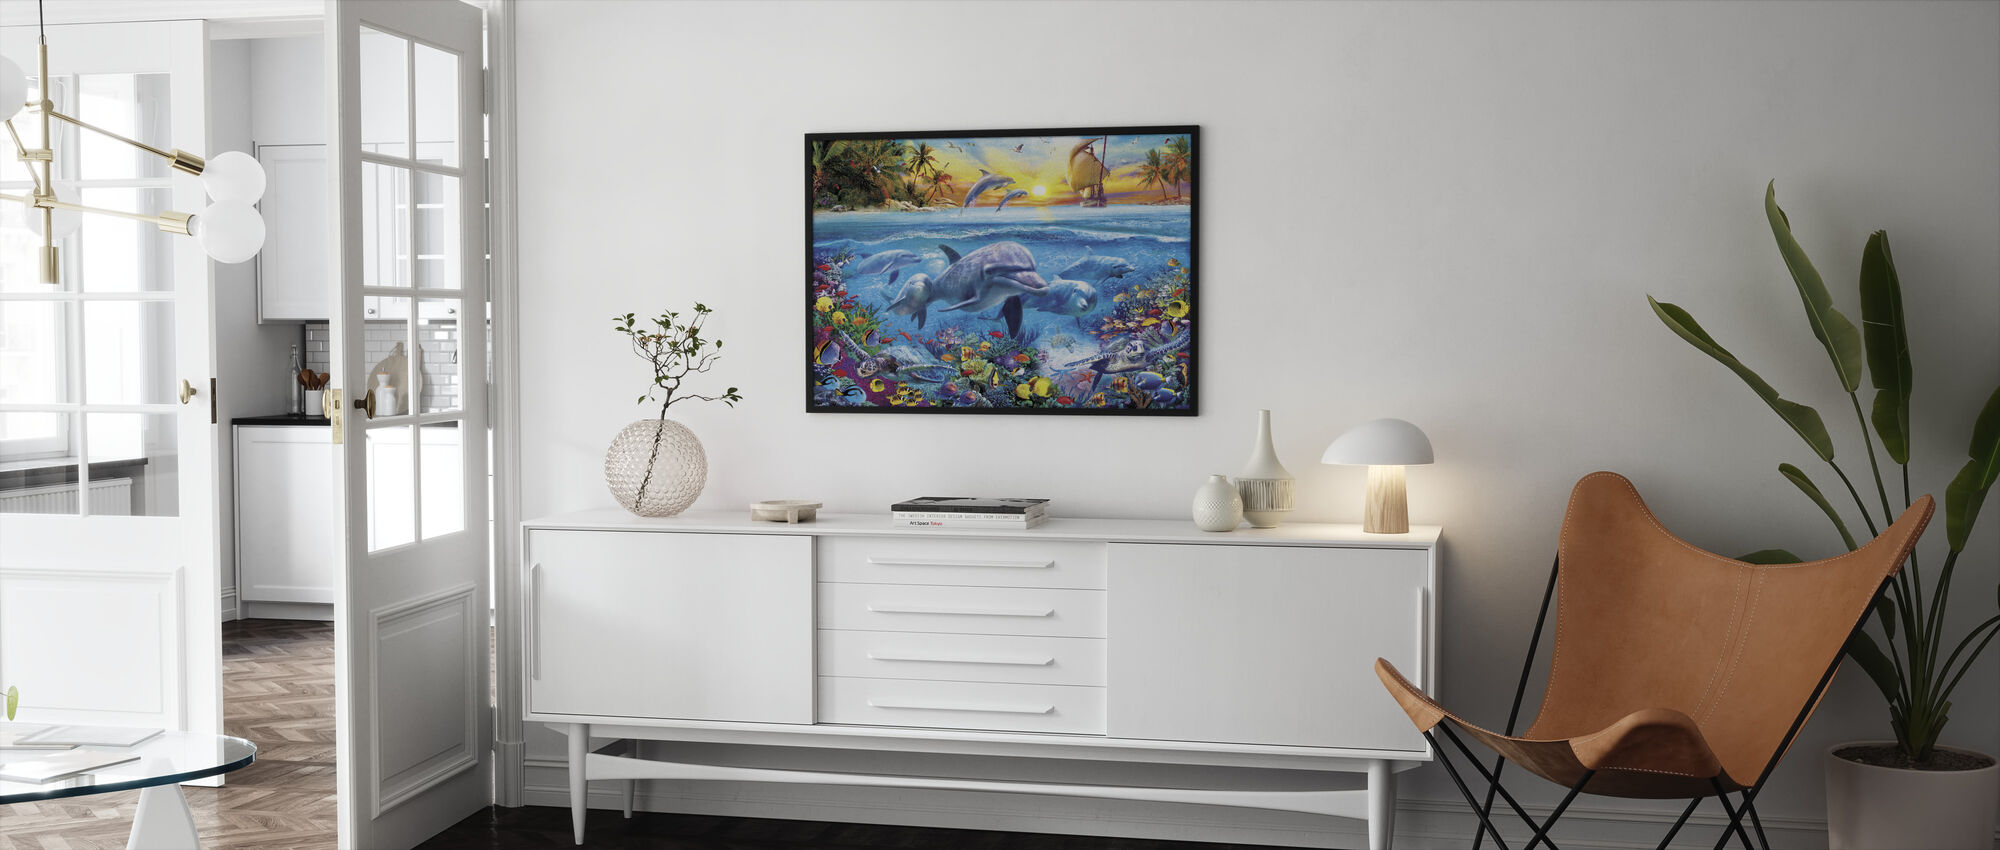 Dolphins and Ship - Framed print - Living Room